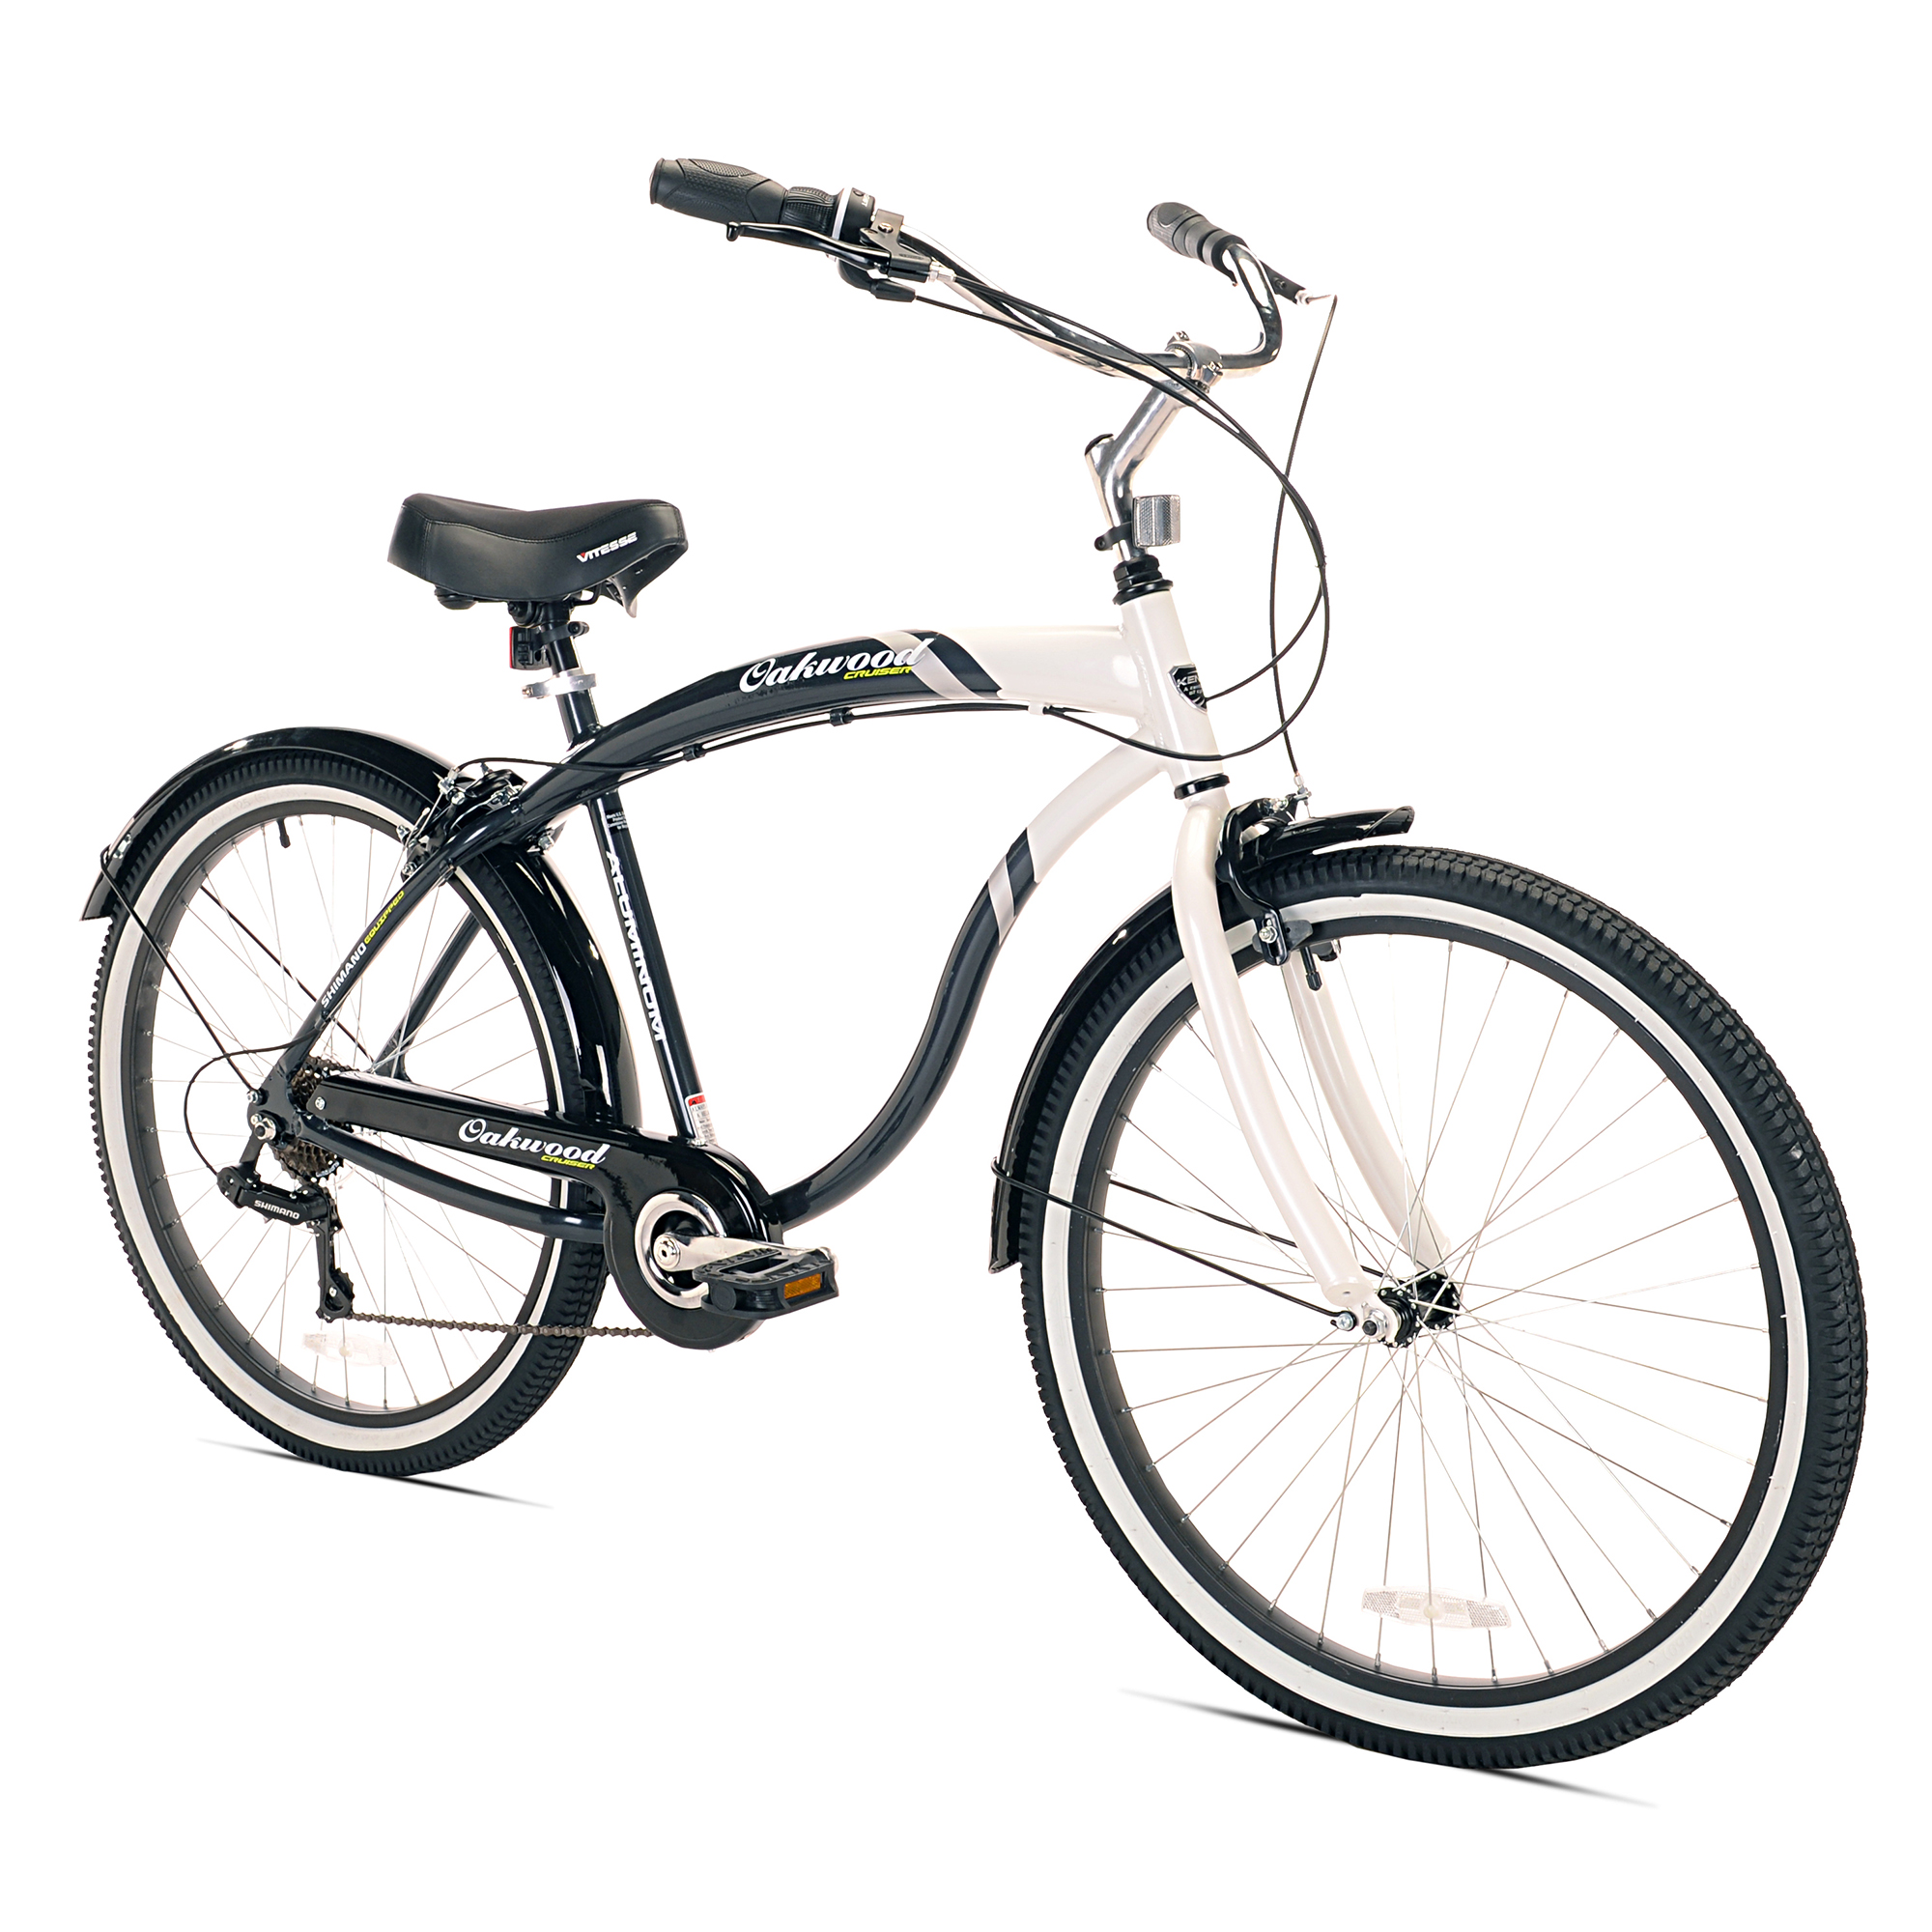 Oakwood Men's 26-Inch White Wall Tire Cruiser Bike with 7-Speed Gear Shift